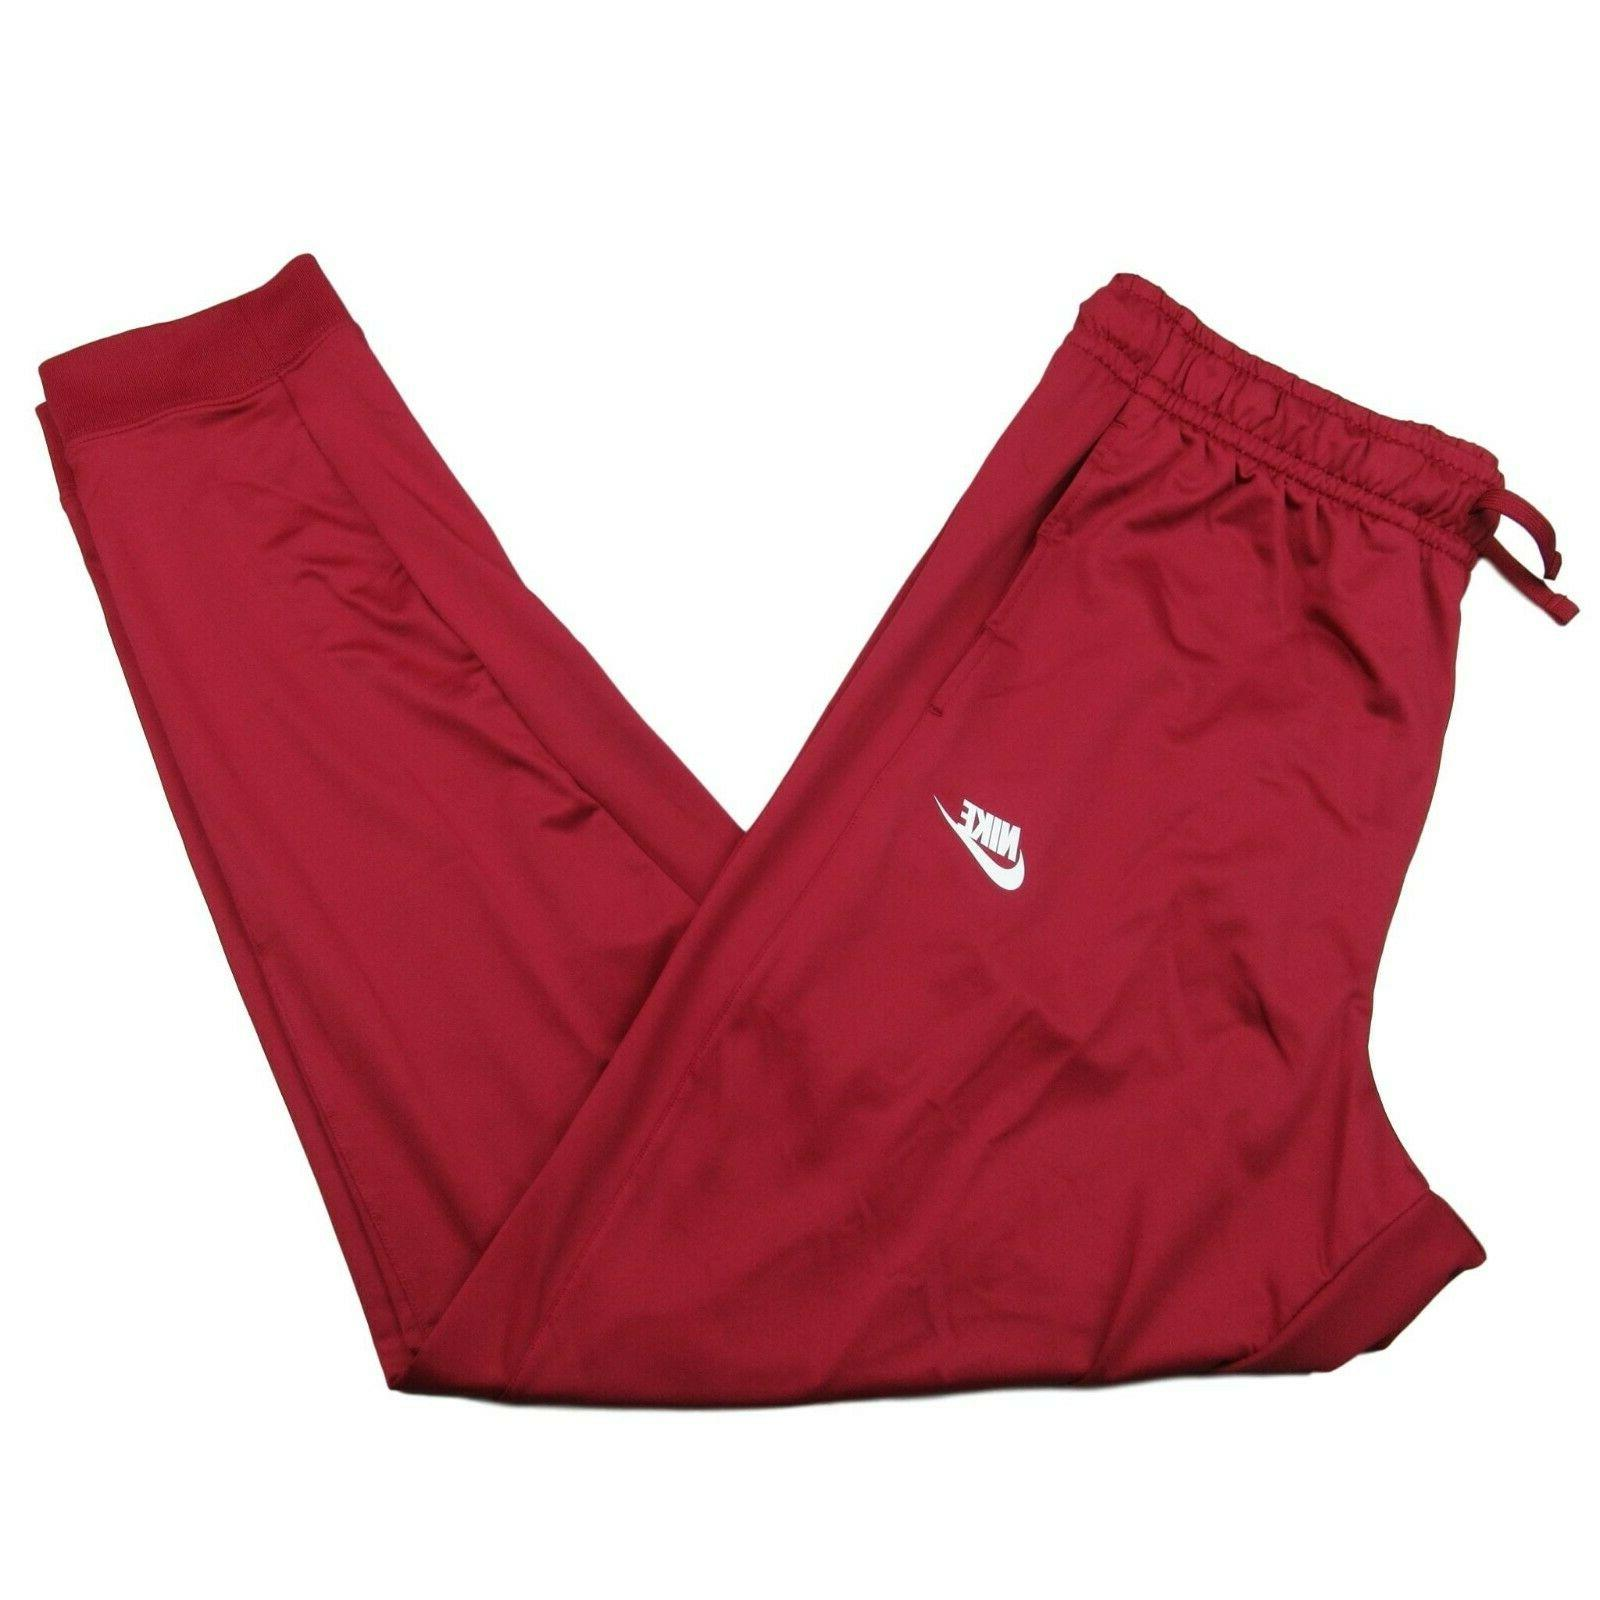 activewear track jogger pants burgundy red taper